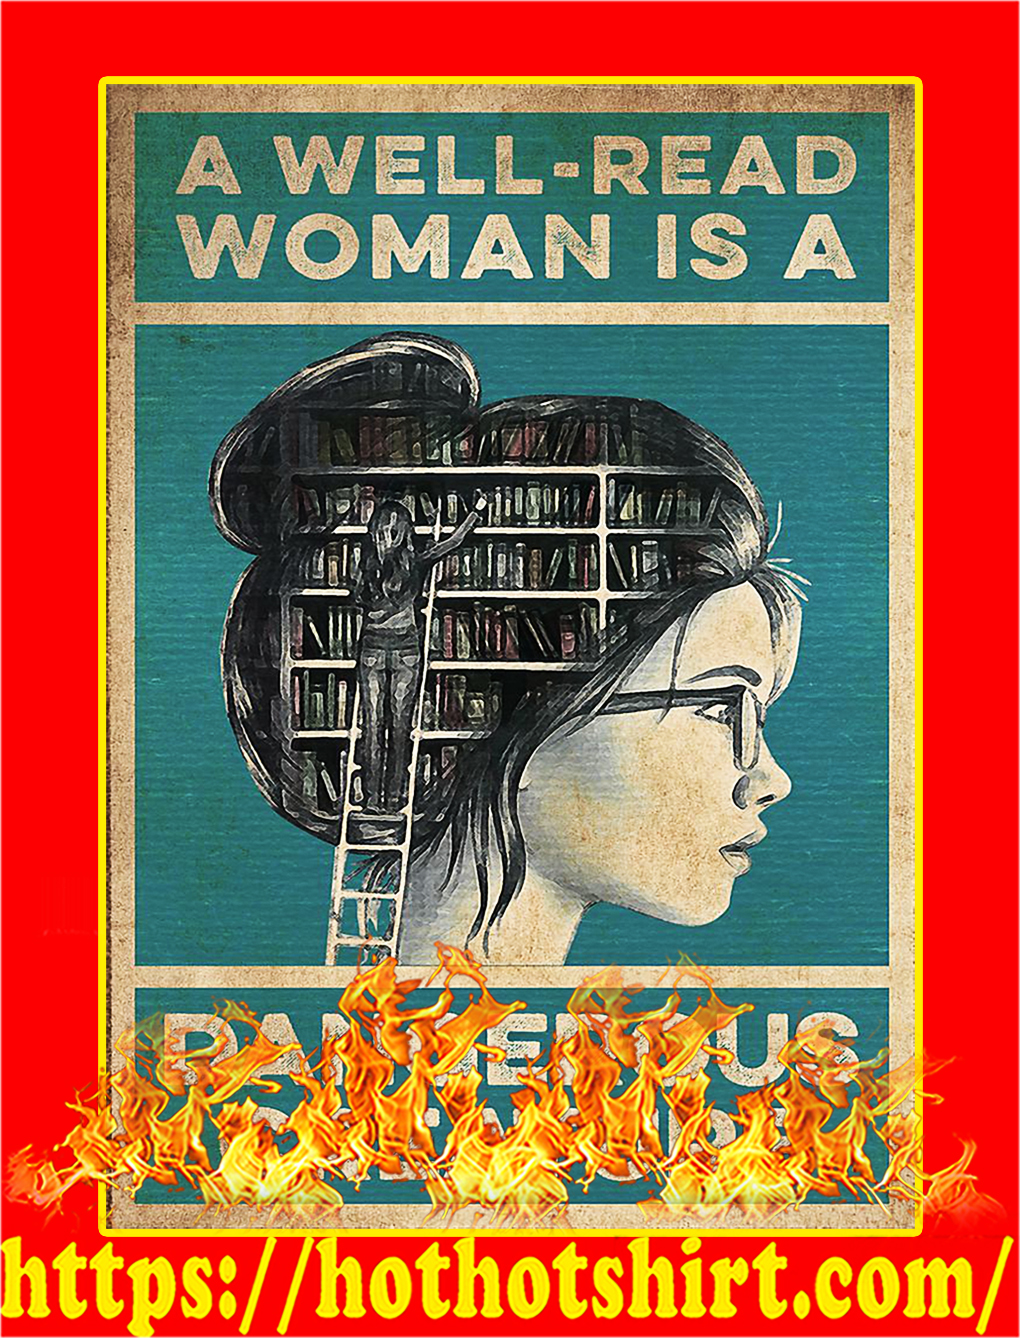 A well read woman is a dangerous creature poster - A2